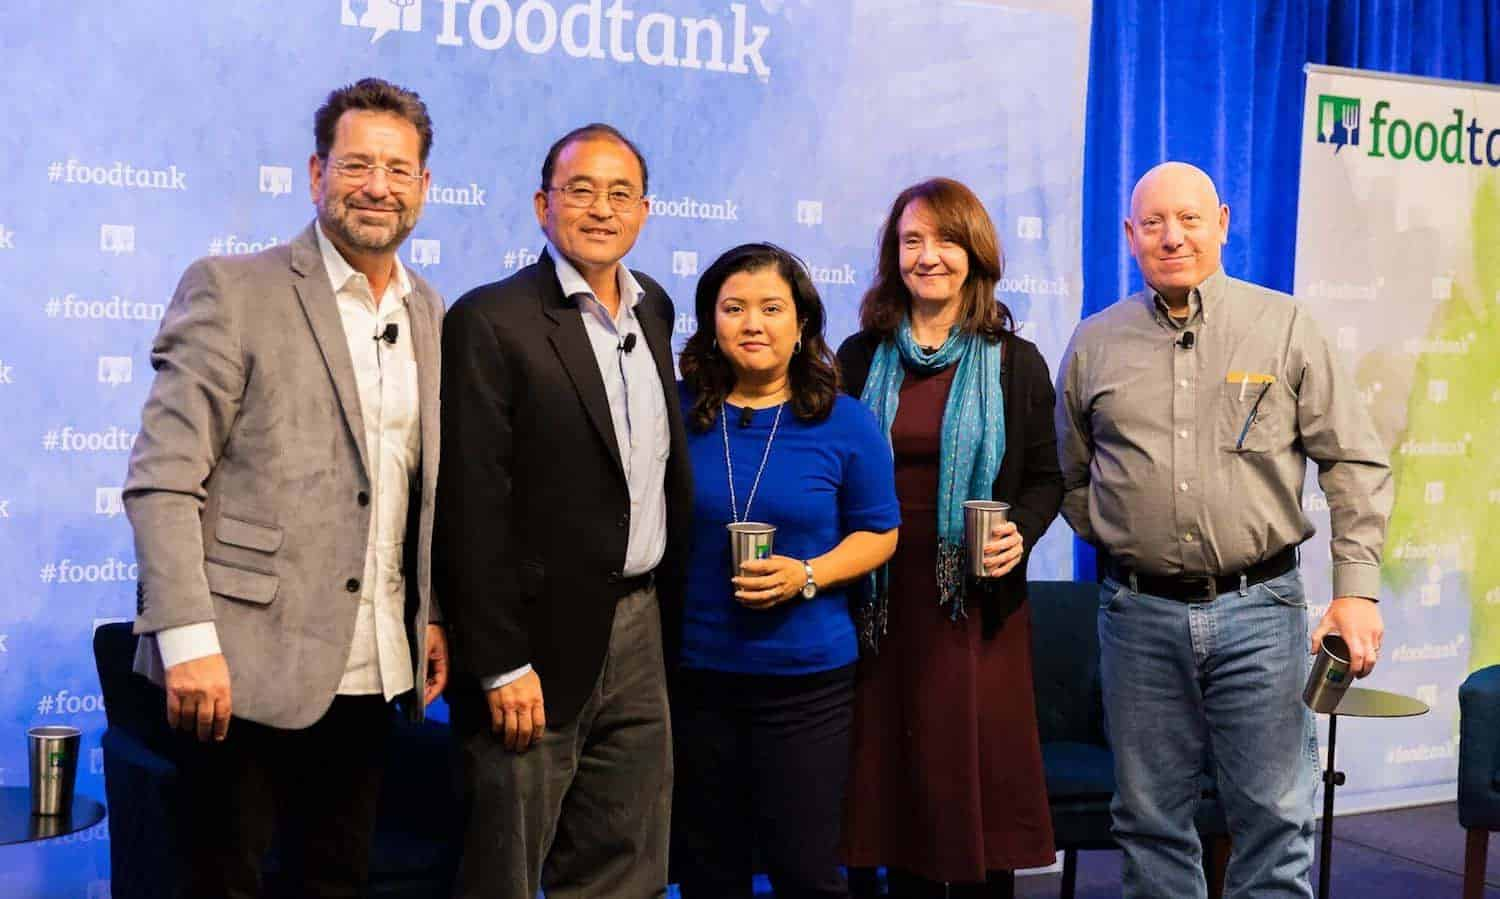 "Farmers talk labor, climate, change, and new agricultural ideas from young people in the 2018 San Diego Food Tank Summit ""Farming for a Better Food System"" panel"